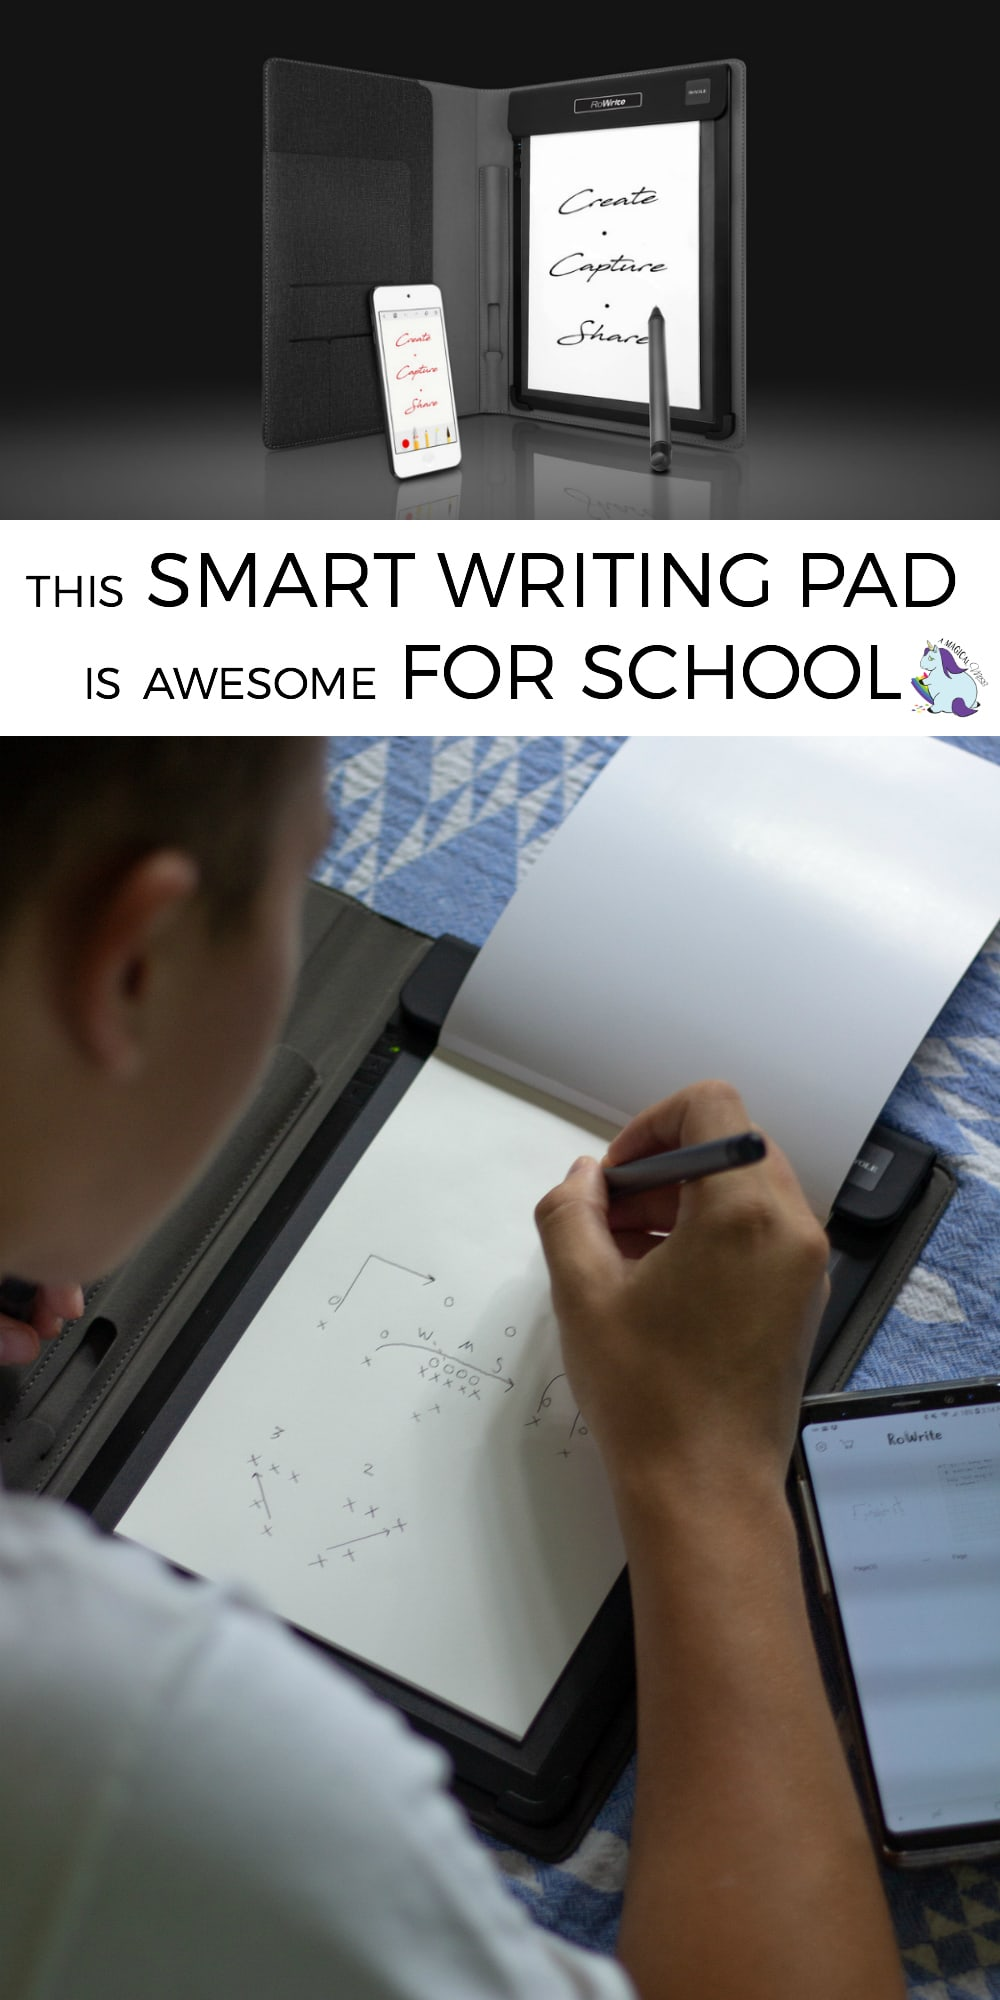 RoWrite - The Smartest Writing Pad for Back to School #DigitalNotes #BackToSchool #gadgets #tablet #tech